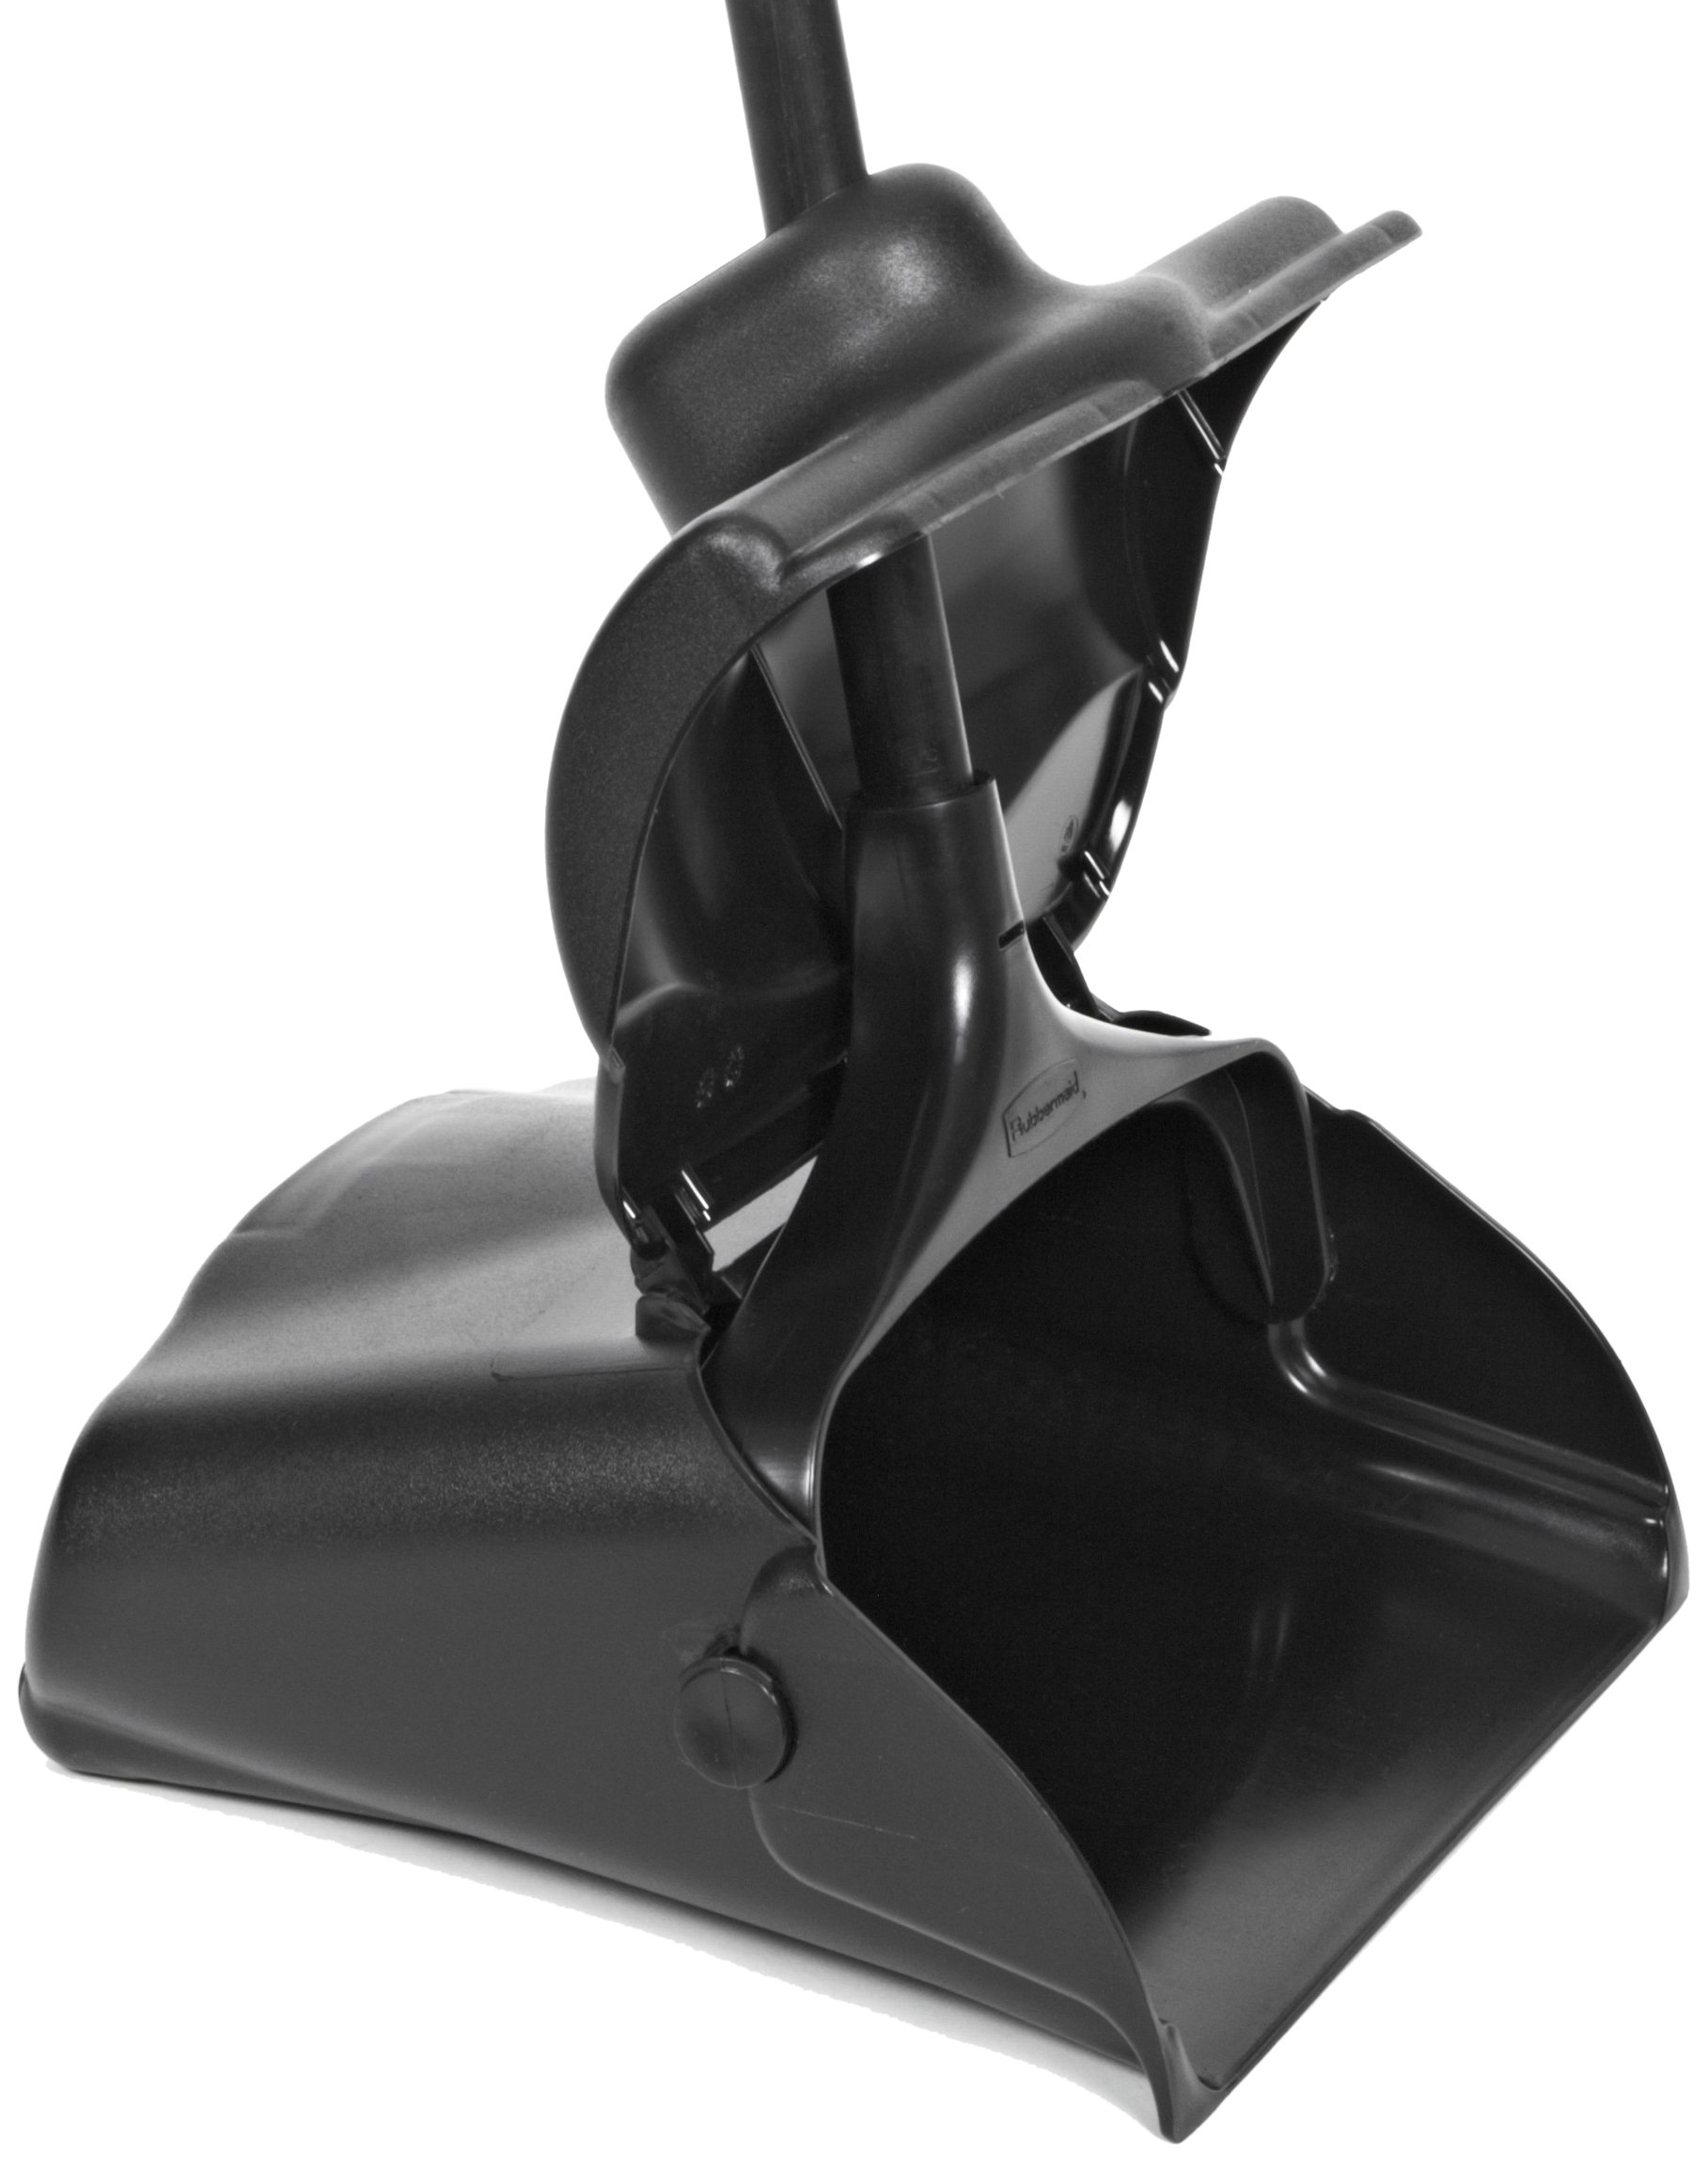 Rubbermaid Commercial Lobby Pro Deluxe Upright Dustpan, Black (FG253300BLA) by Rubbermaid Commercial Products